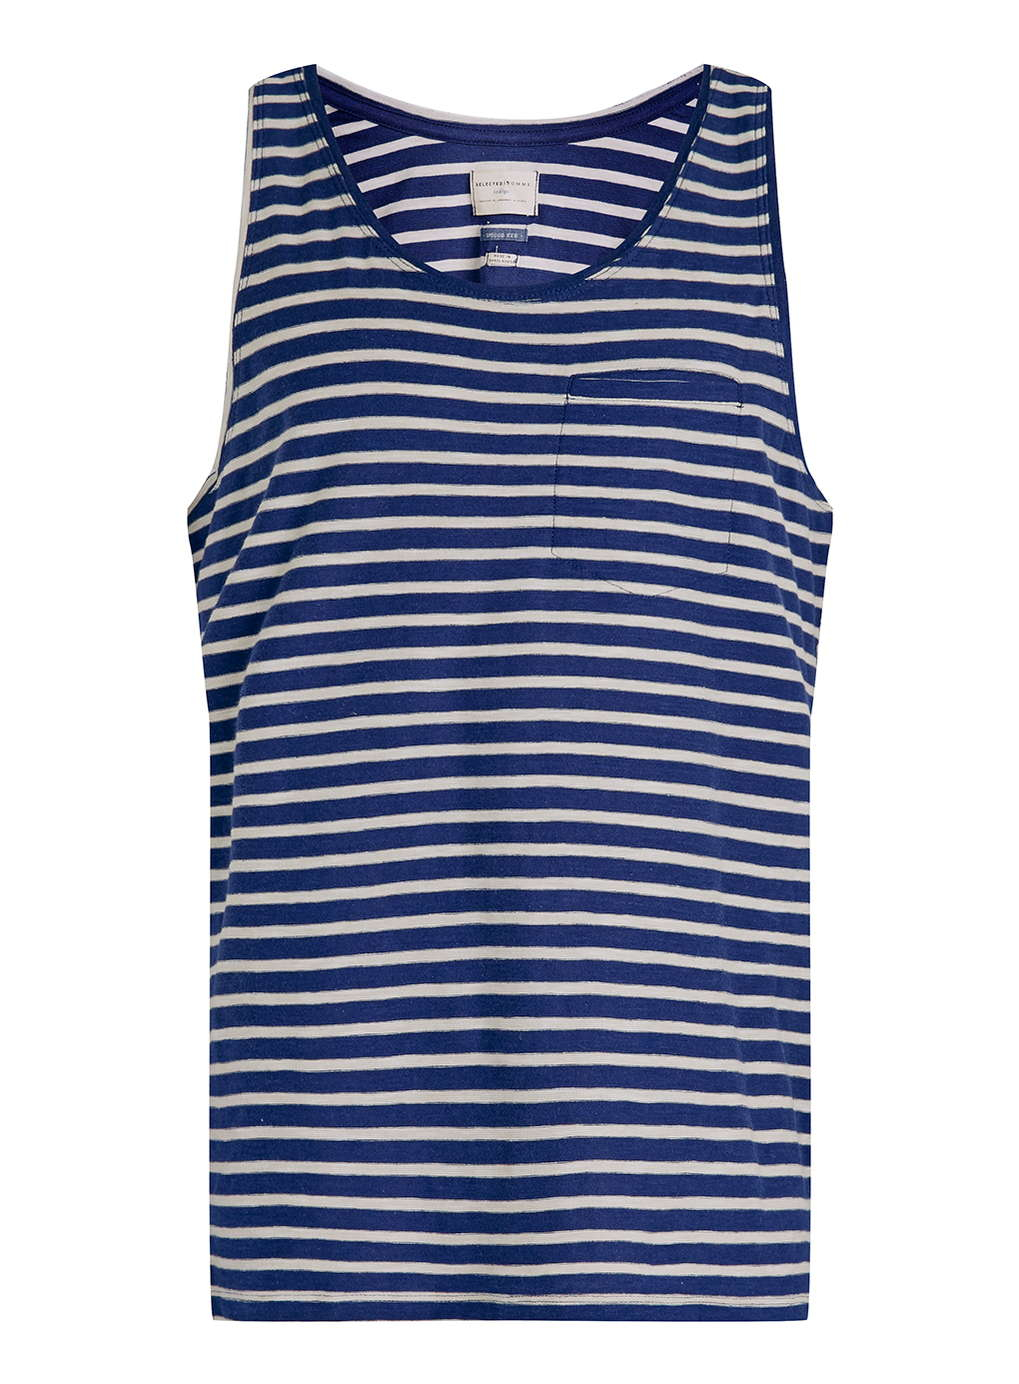 Lyst Topman Selected Homme White And Navy Striped Tank